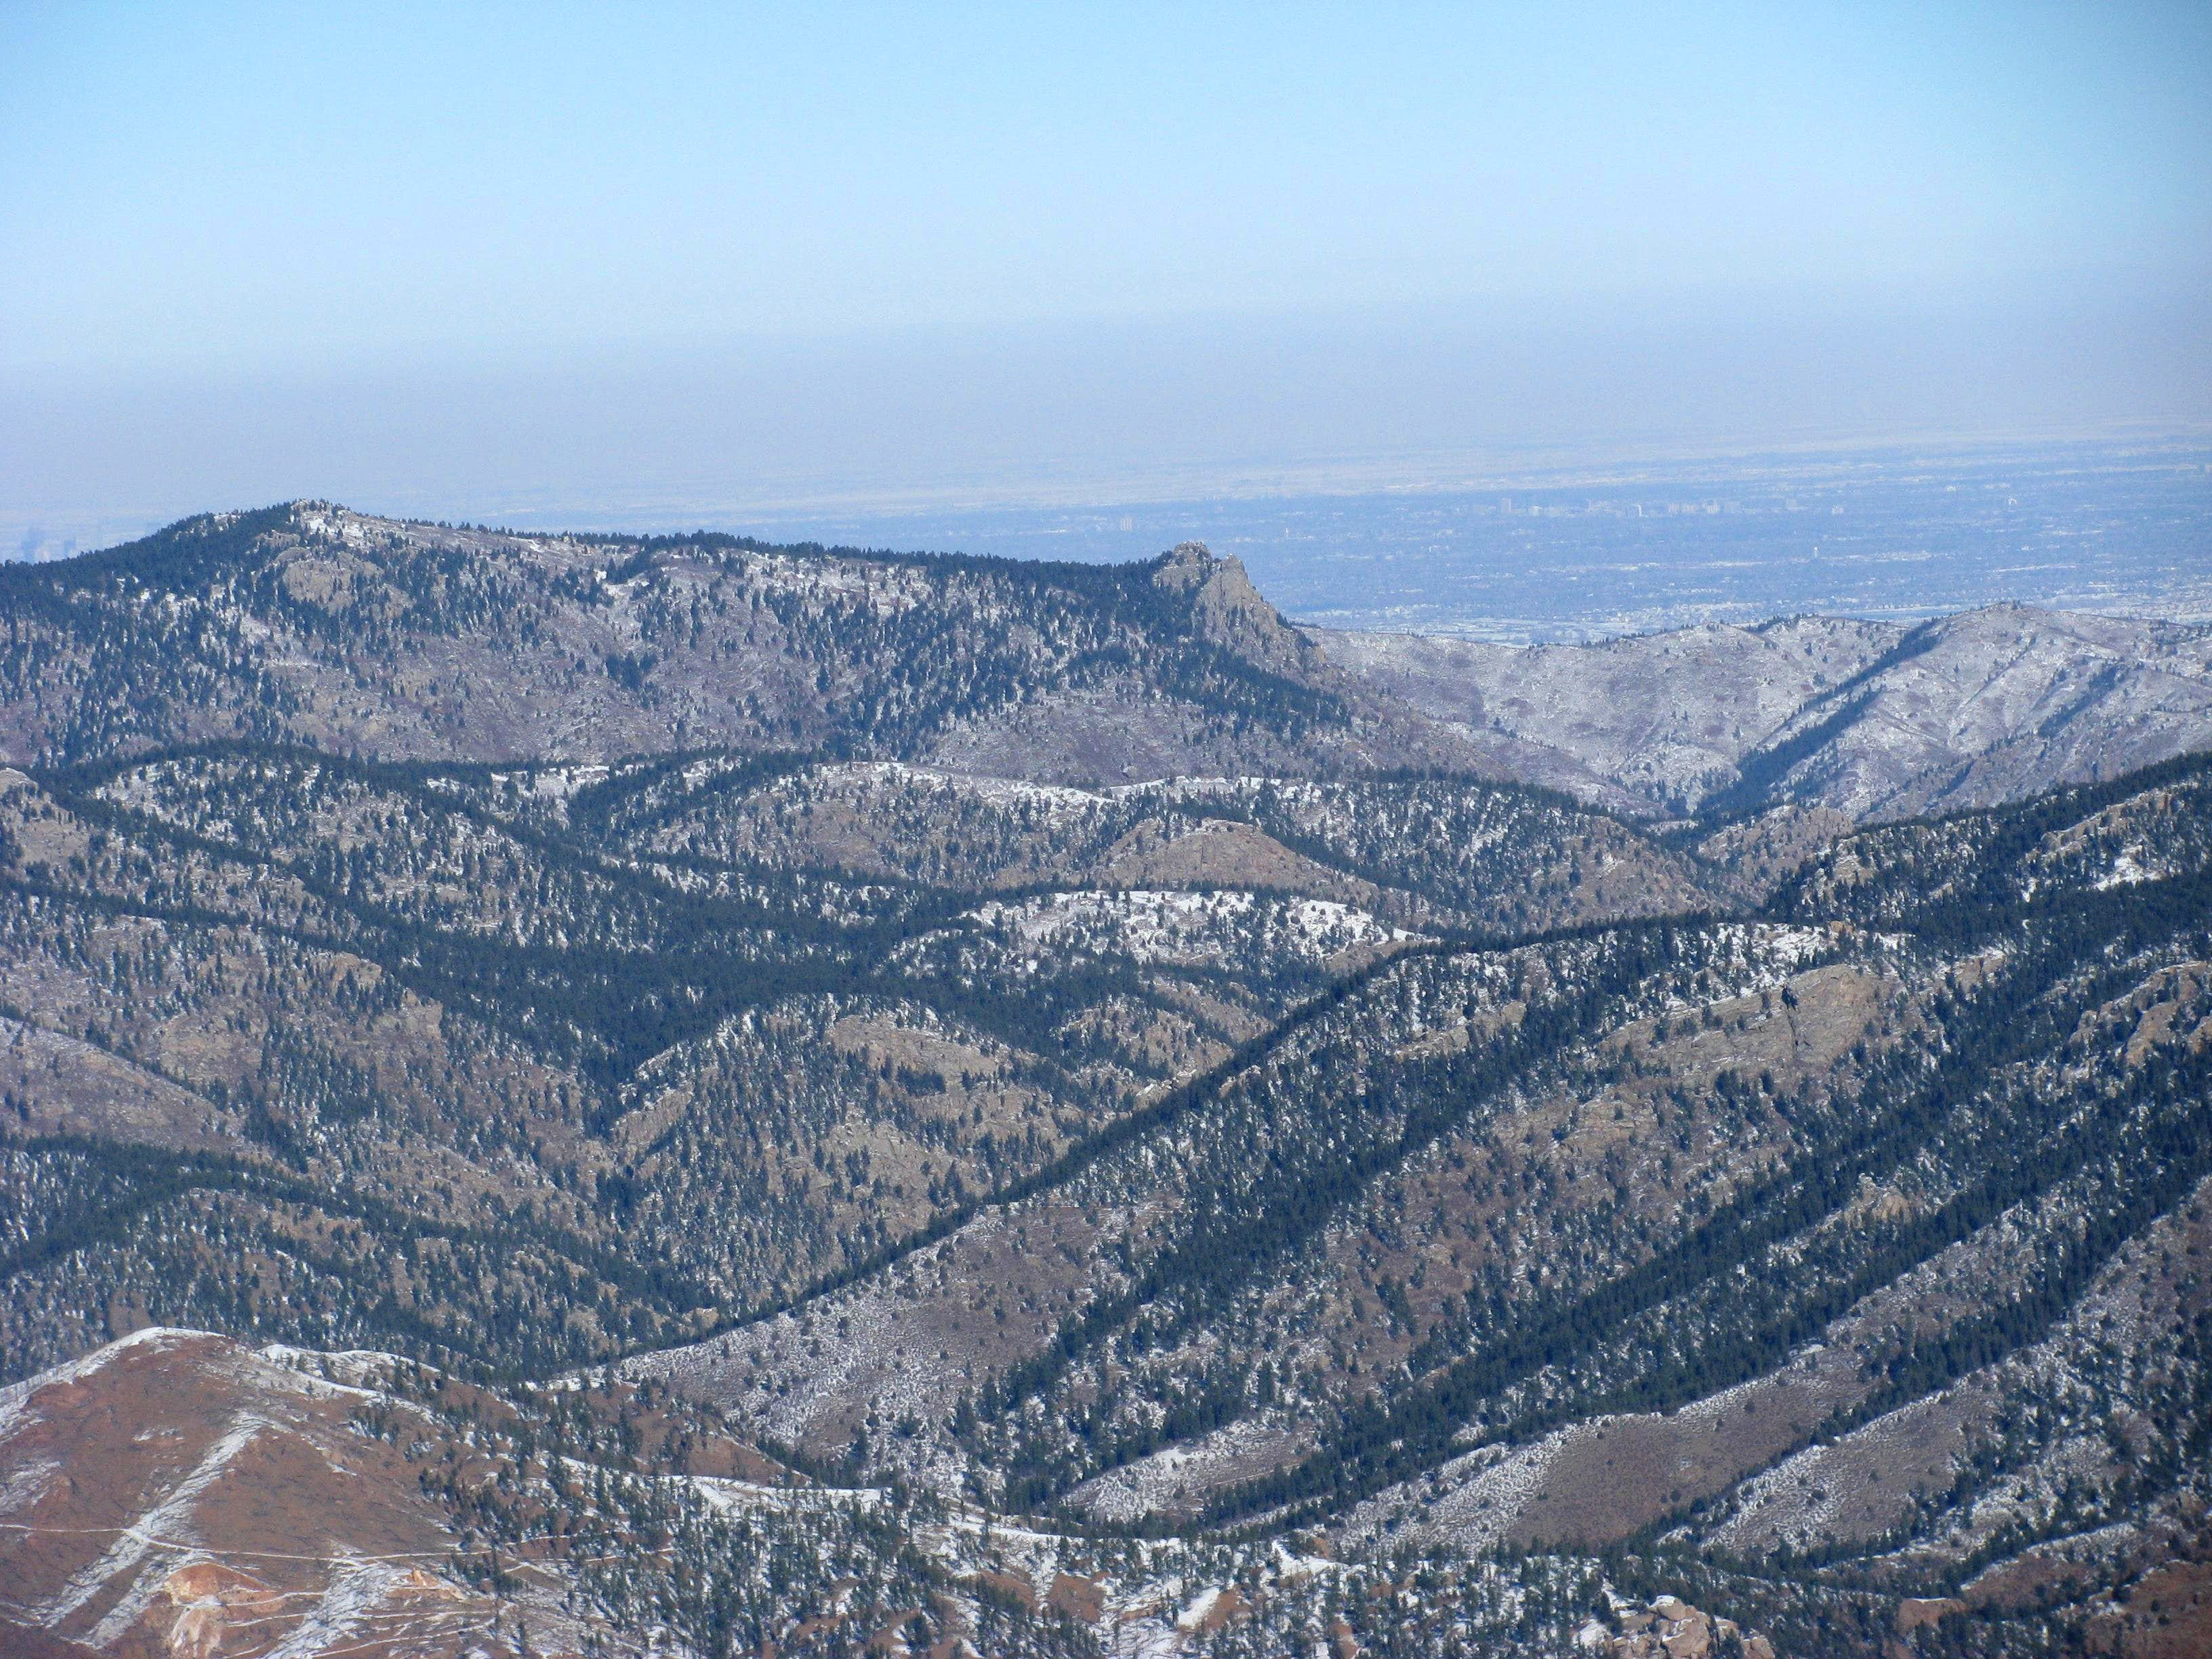 Turkshead Peak